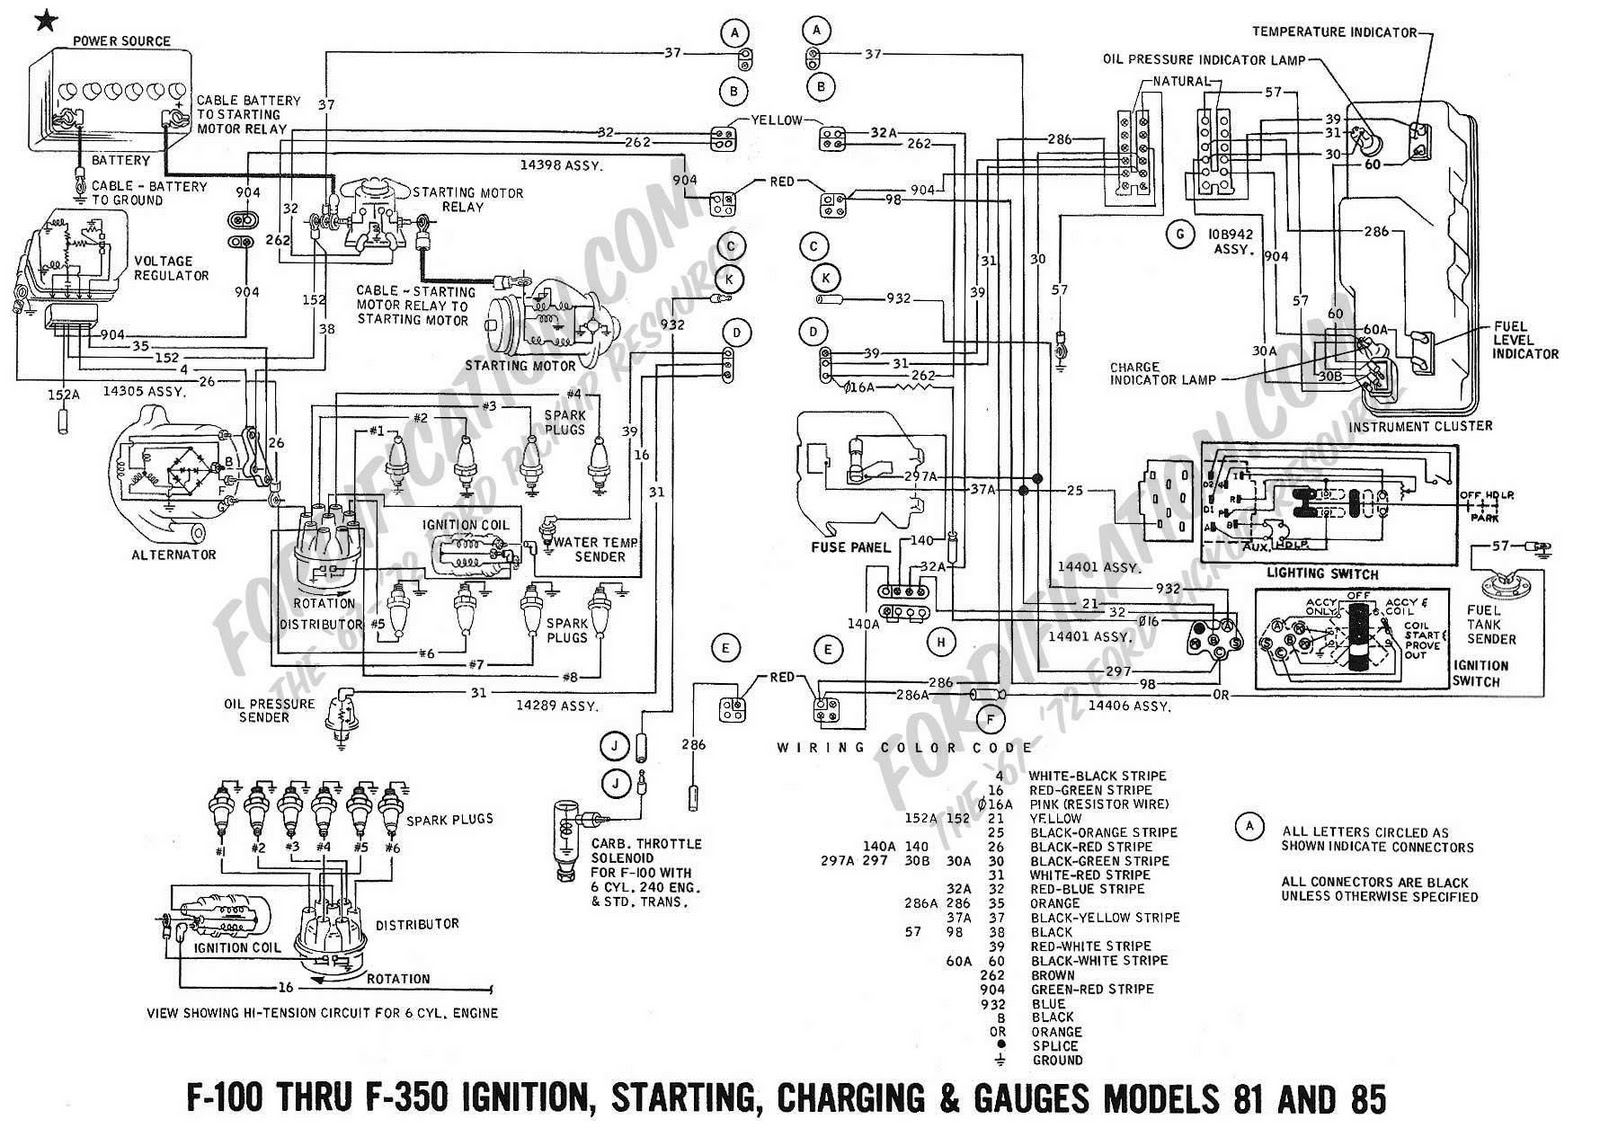 1970 Corvette Headlight Wiring Reinvent Your Diagram C3 Free Picture Schematic 1969 Ford F100 F350 Ignition Starting Charging And Drawings 1965